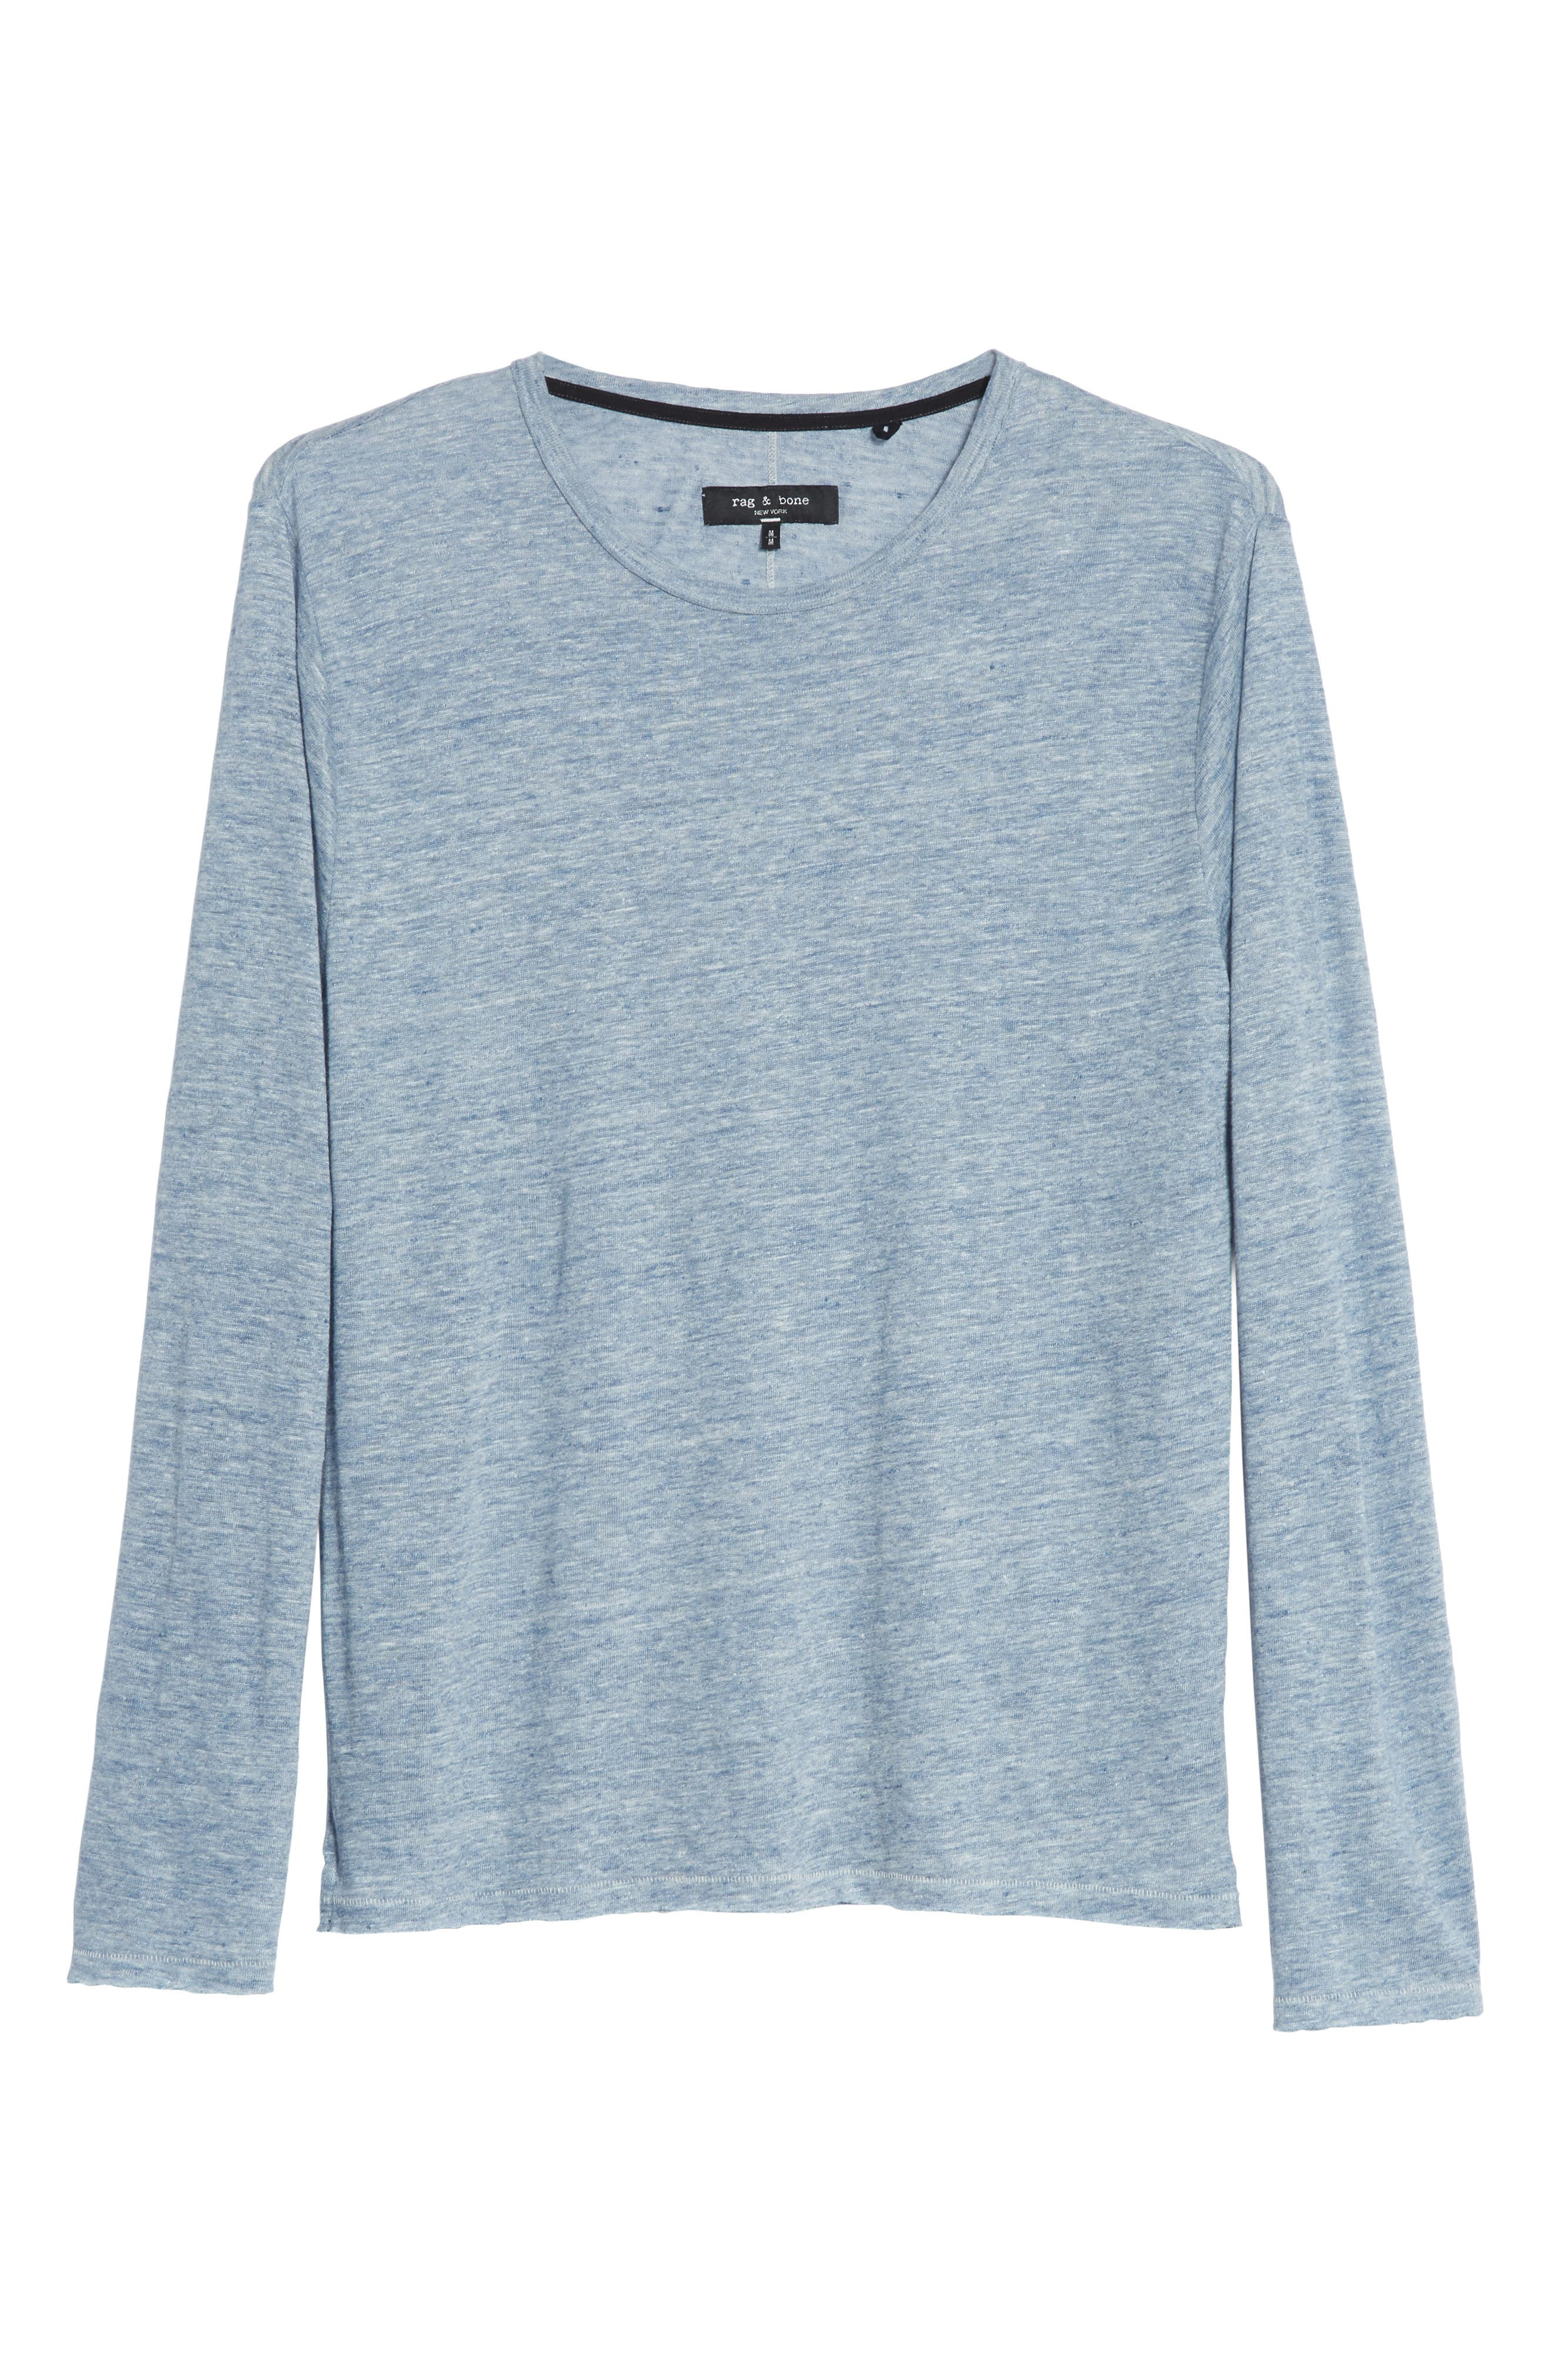 Owen Linen Long Sleeve T-Shirt,                             Alternate thumbnail 18, color,